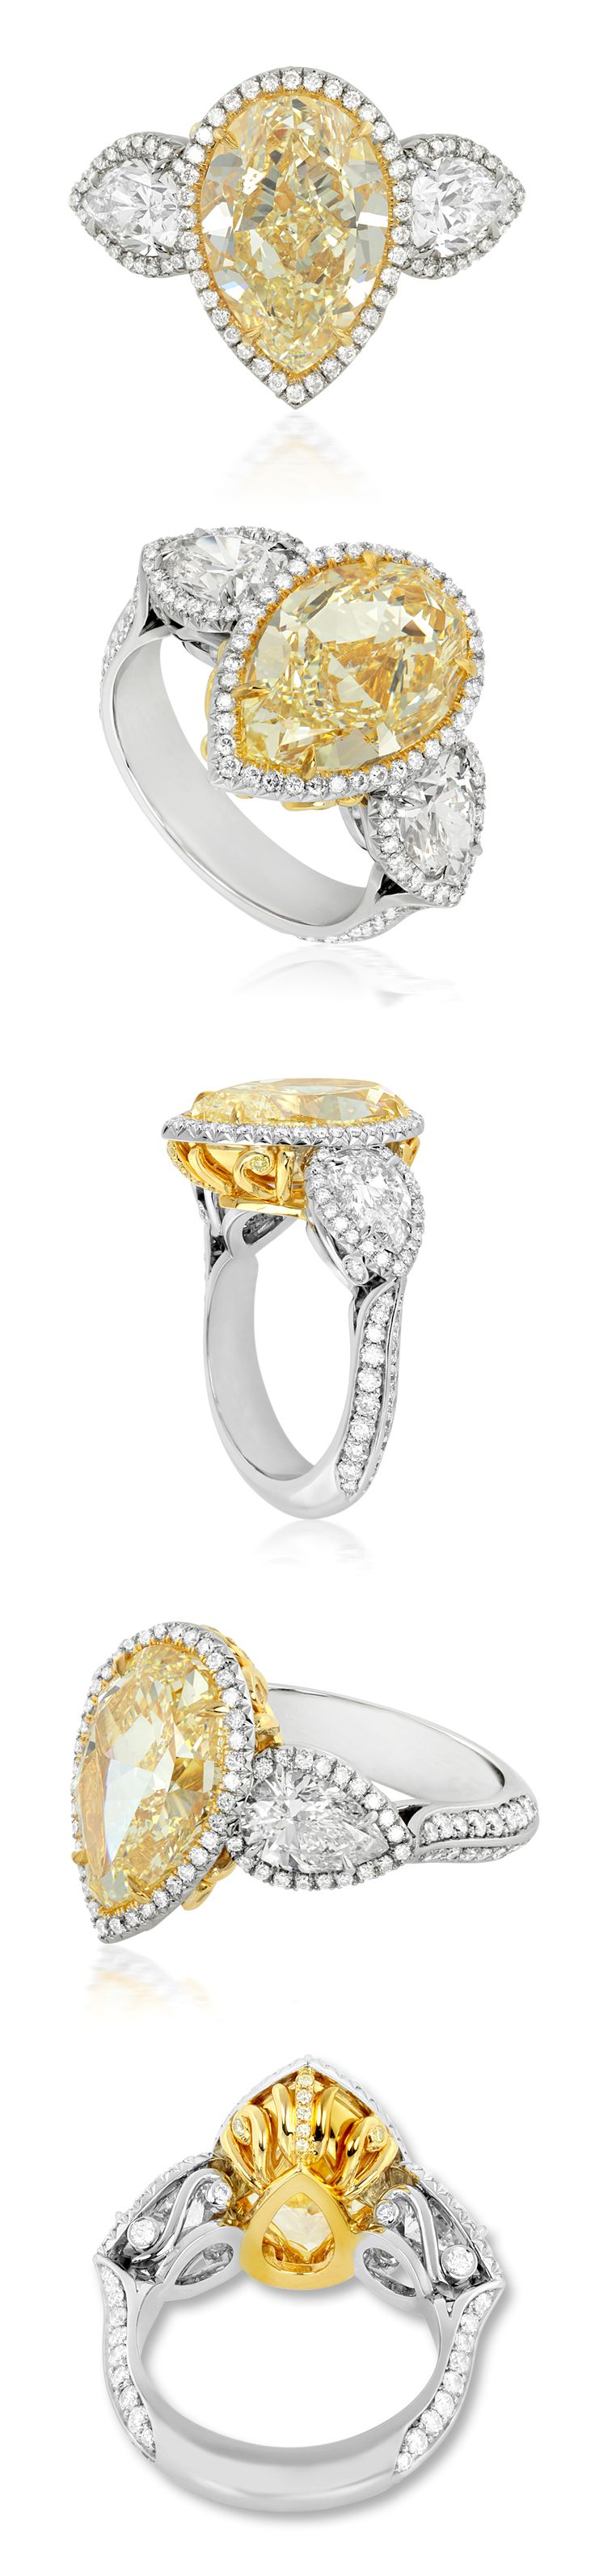 diamond color shv side lalaserengraving ctw ring engagement data cushion la gold def com white rings